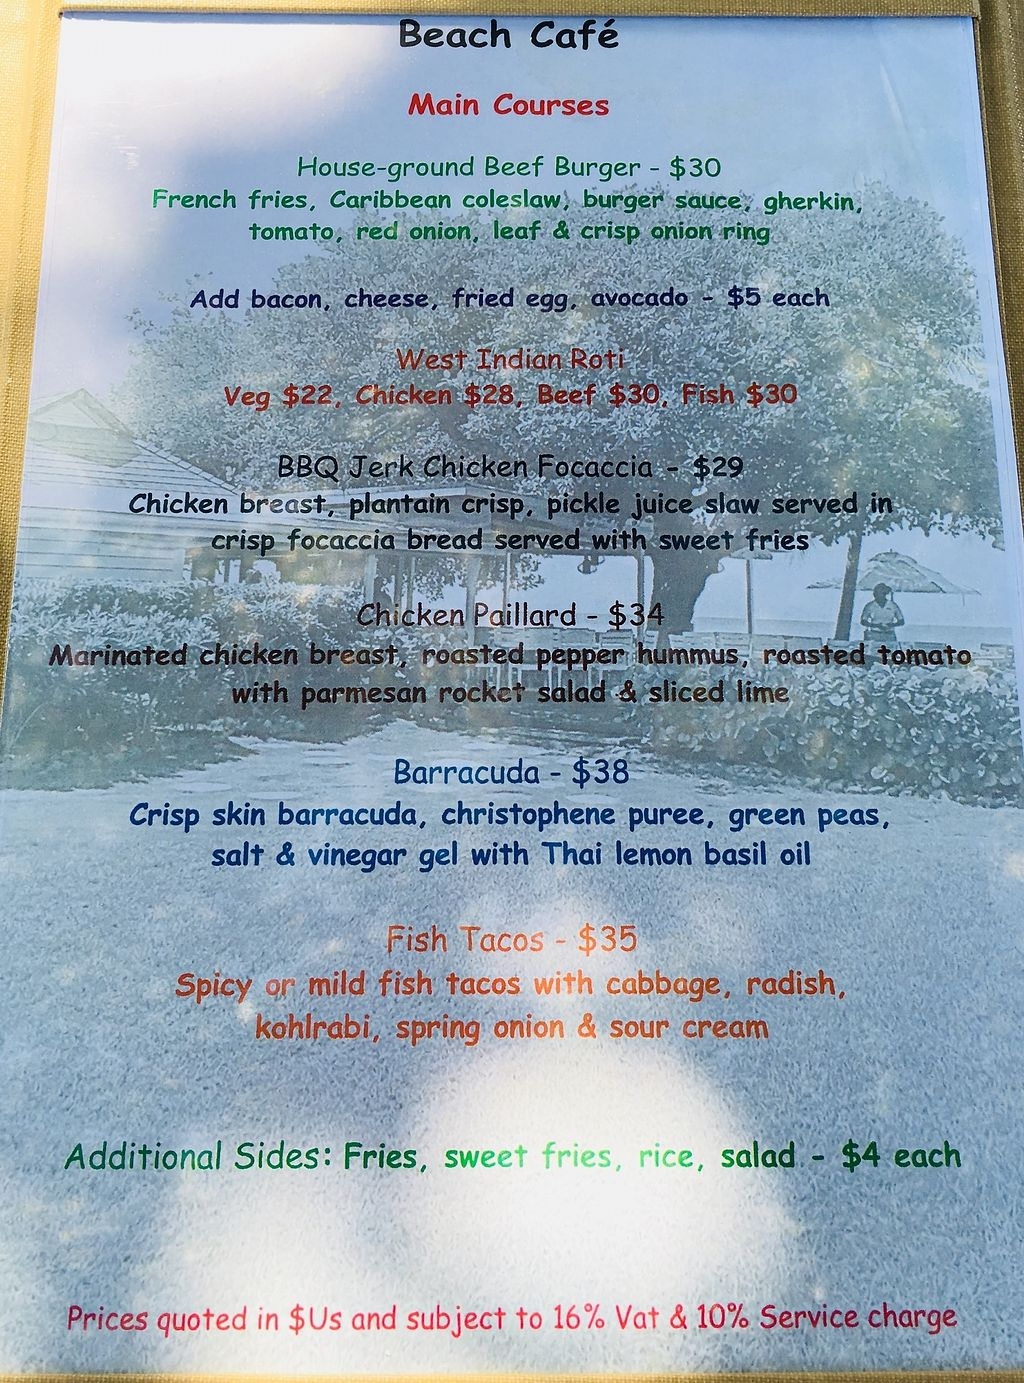 """Photo of Cotton House Beach Cafe  by <a href=""""/members/profile/veganmom"""">veganmom</a> <br/>Main menu  <br/> November 22, 2017  - <a href='/contact/abuse/image/105673/328127'>Report</a>"""